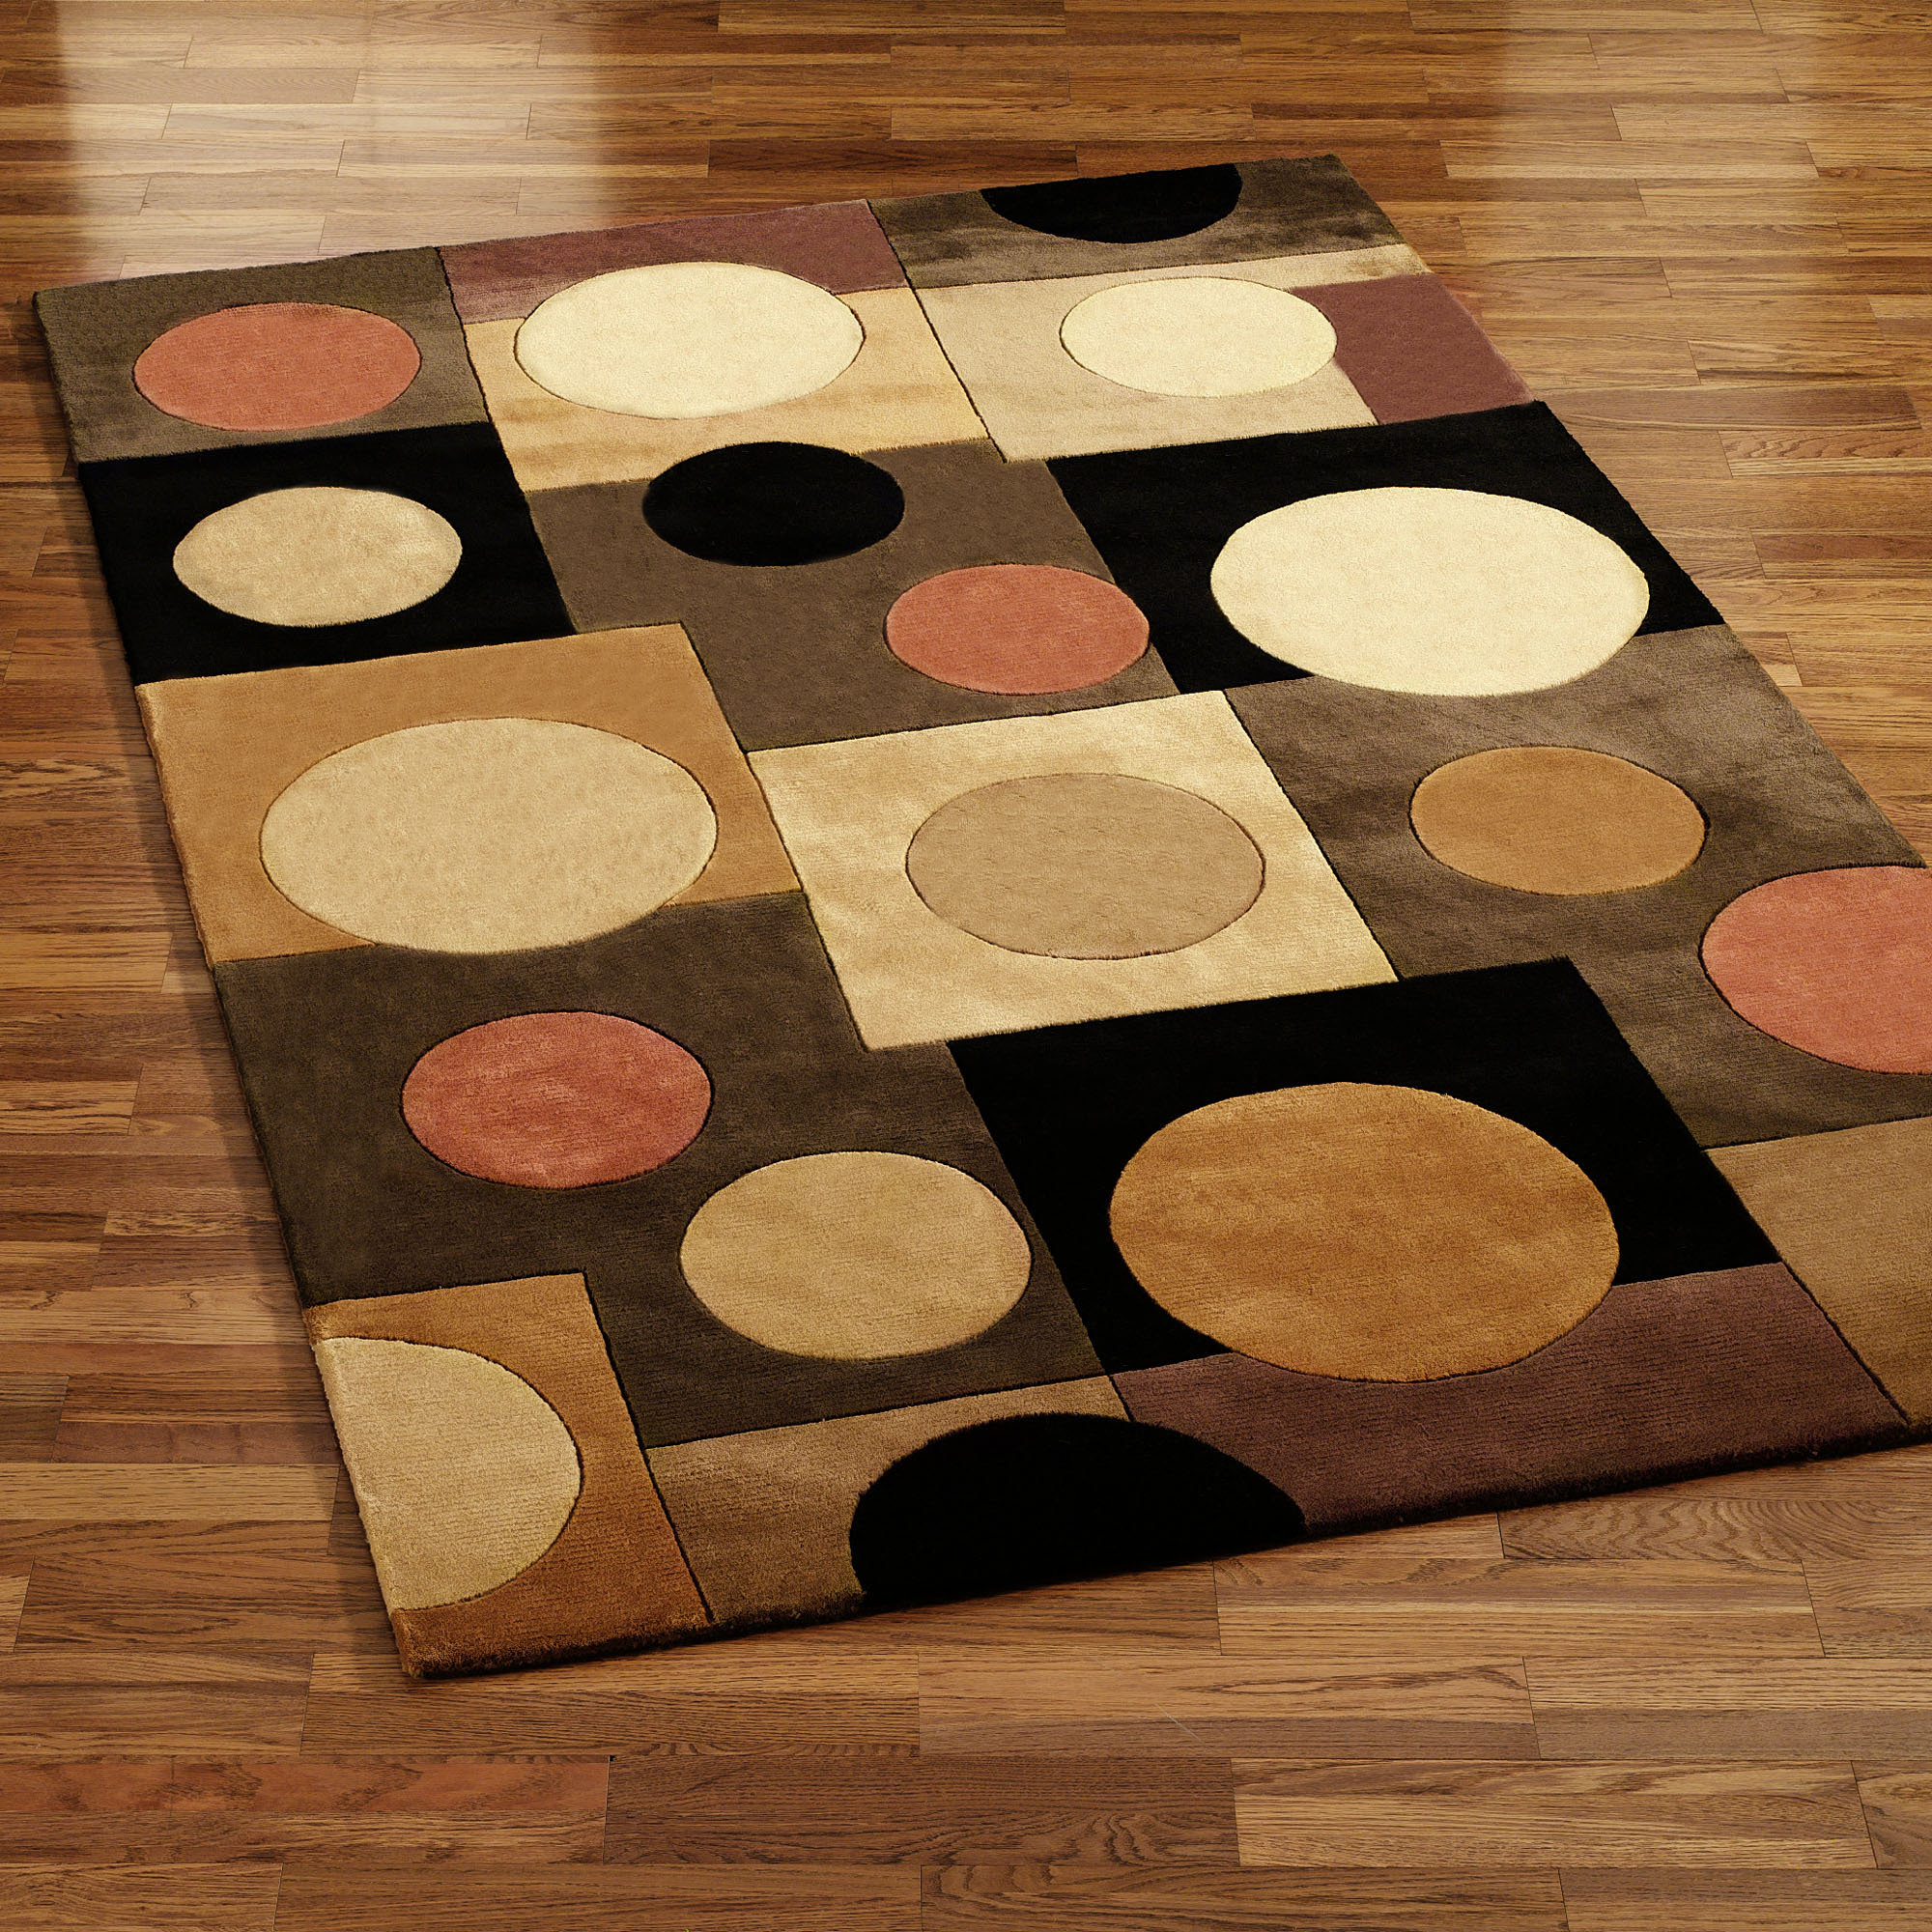 Contemporary affordable rugs contemporary affordable rugs image of: contemporary modern rugs ideas  naqmtcb DRTYUXG